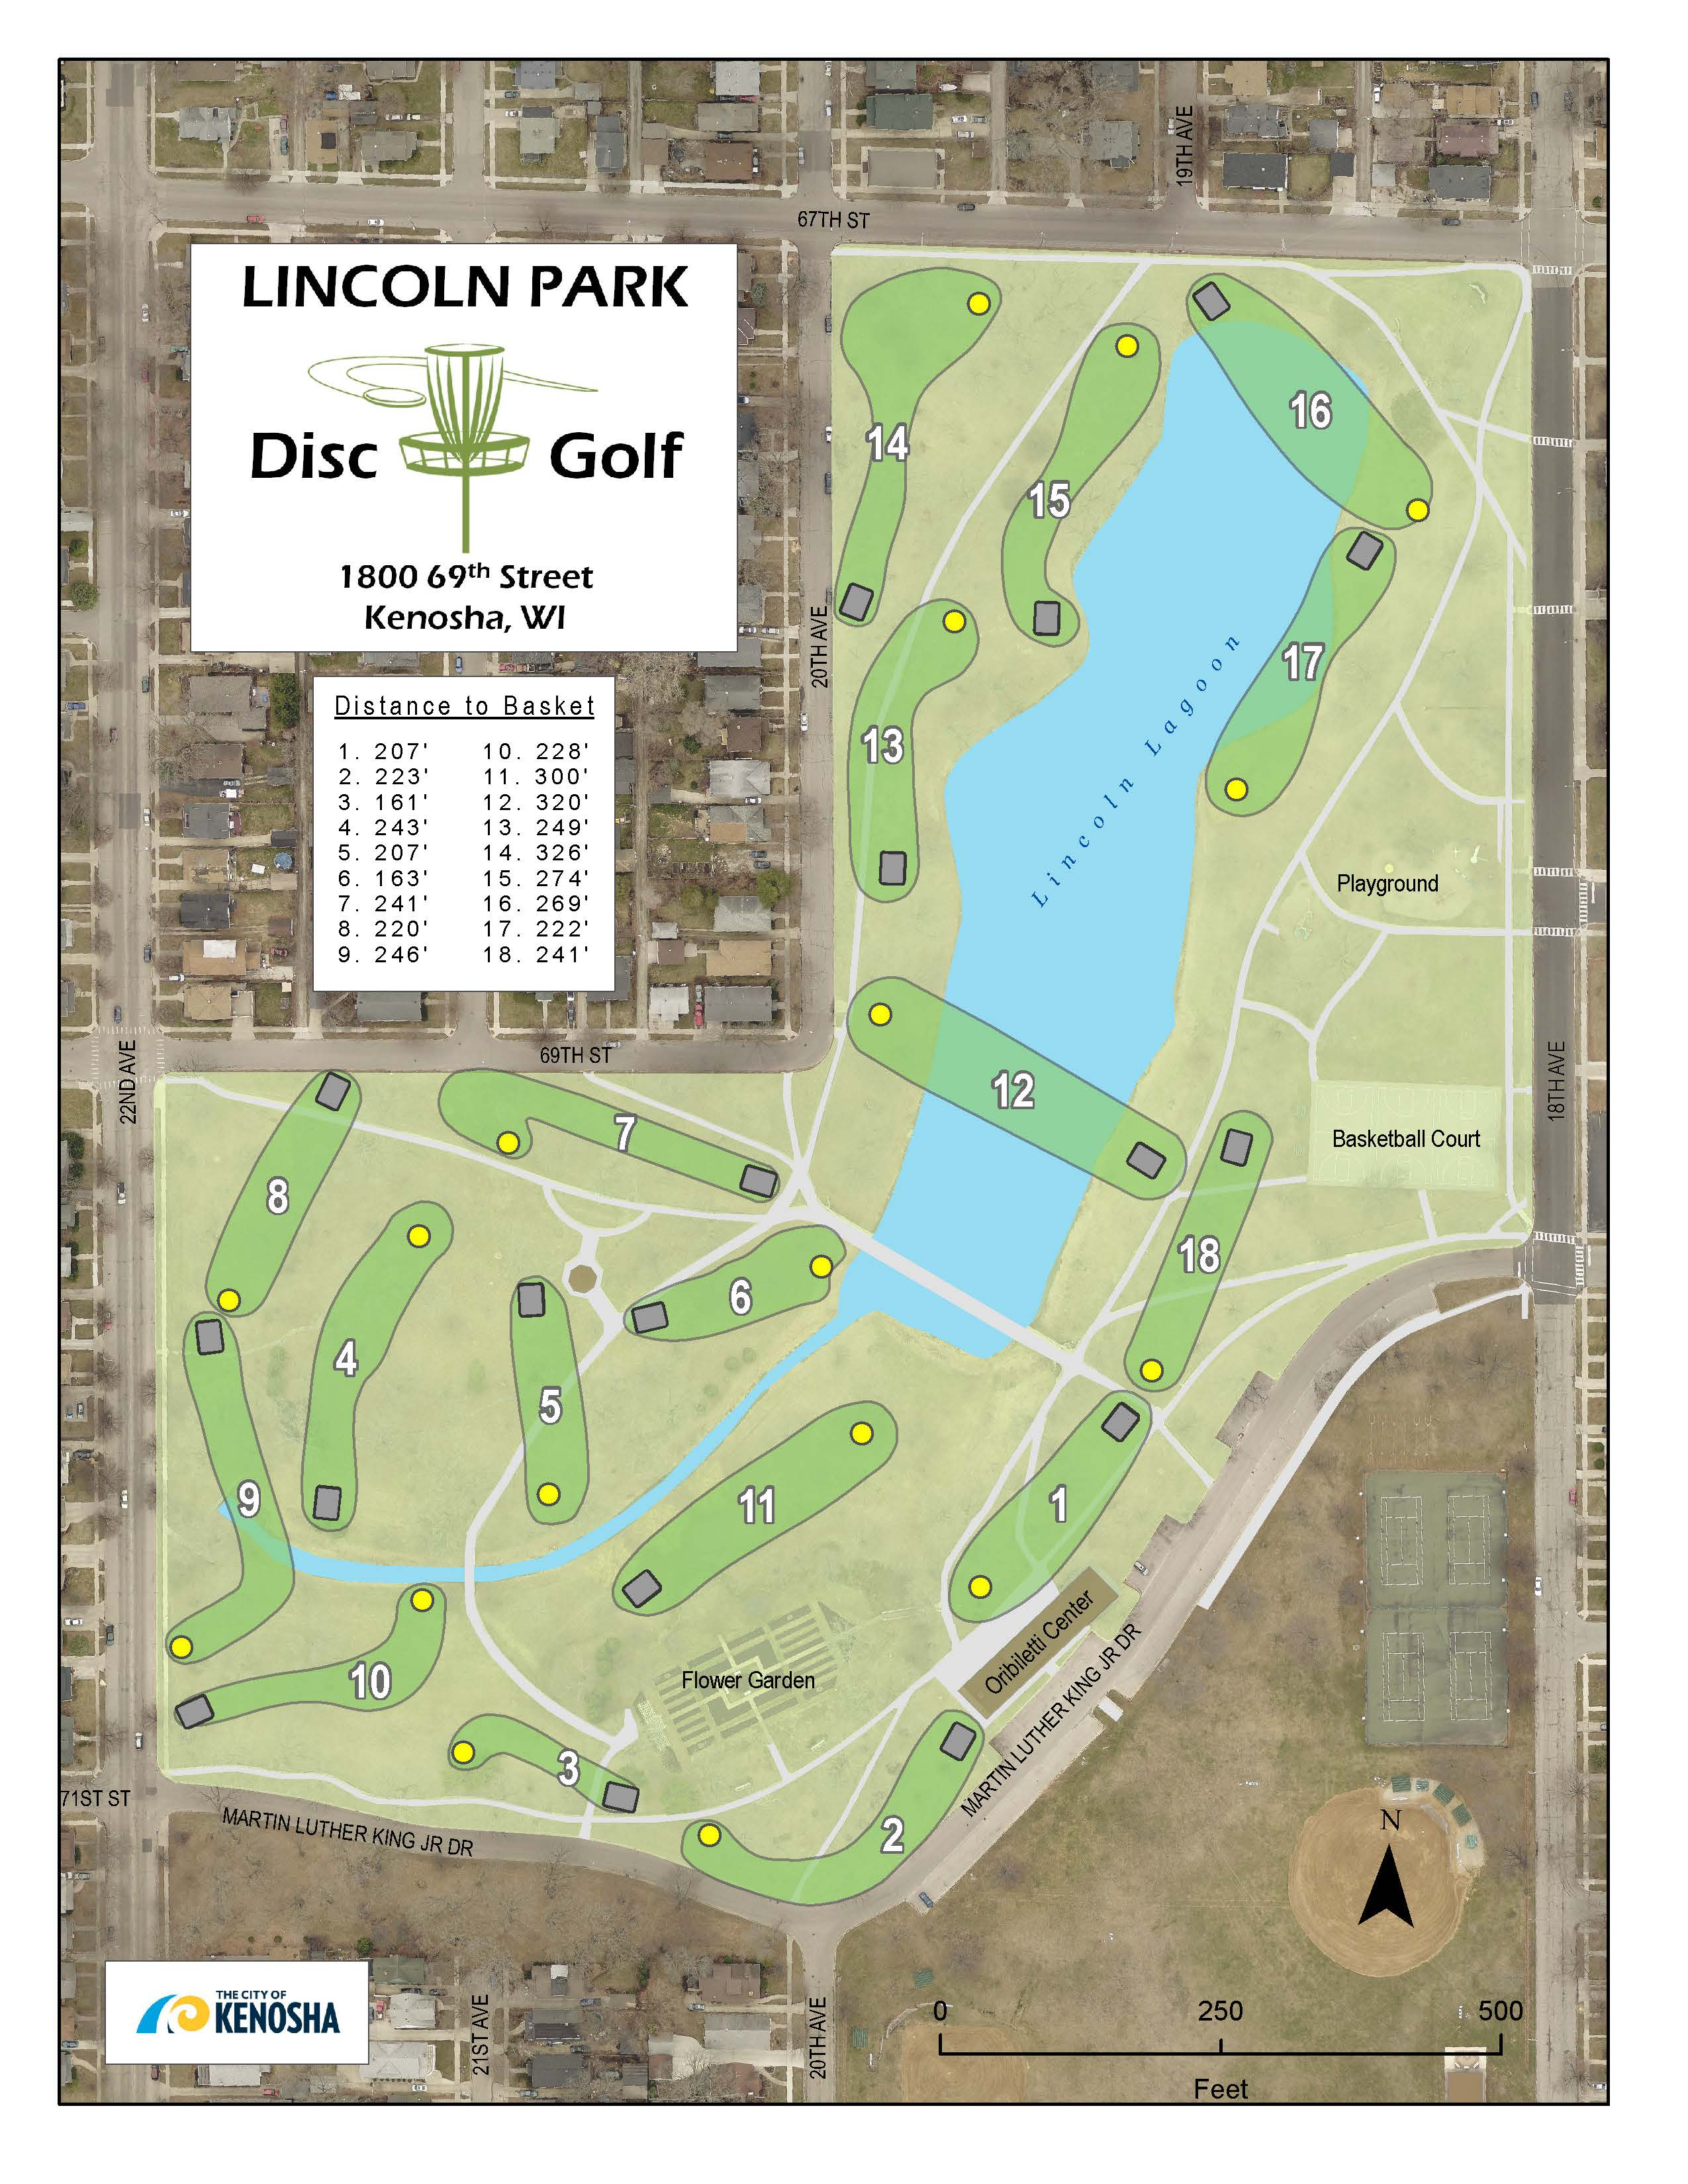 LincolnParkDiscCourseMap